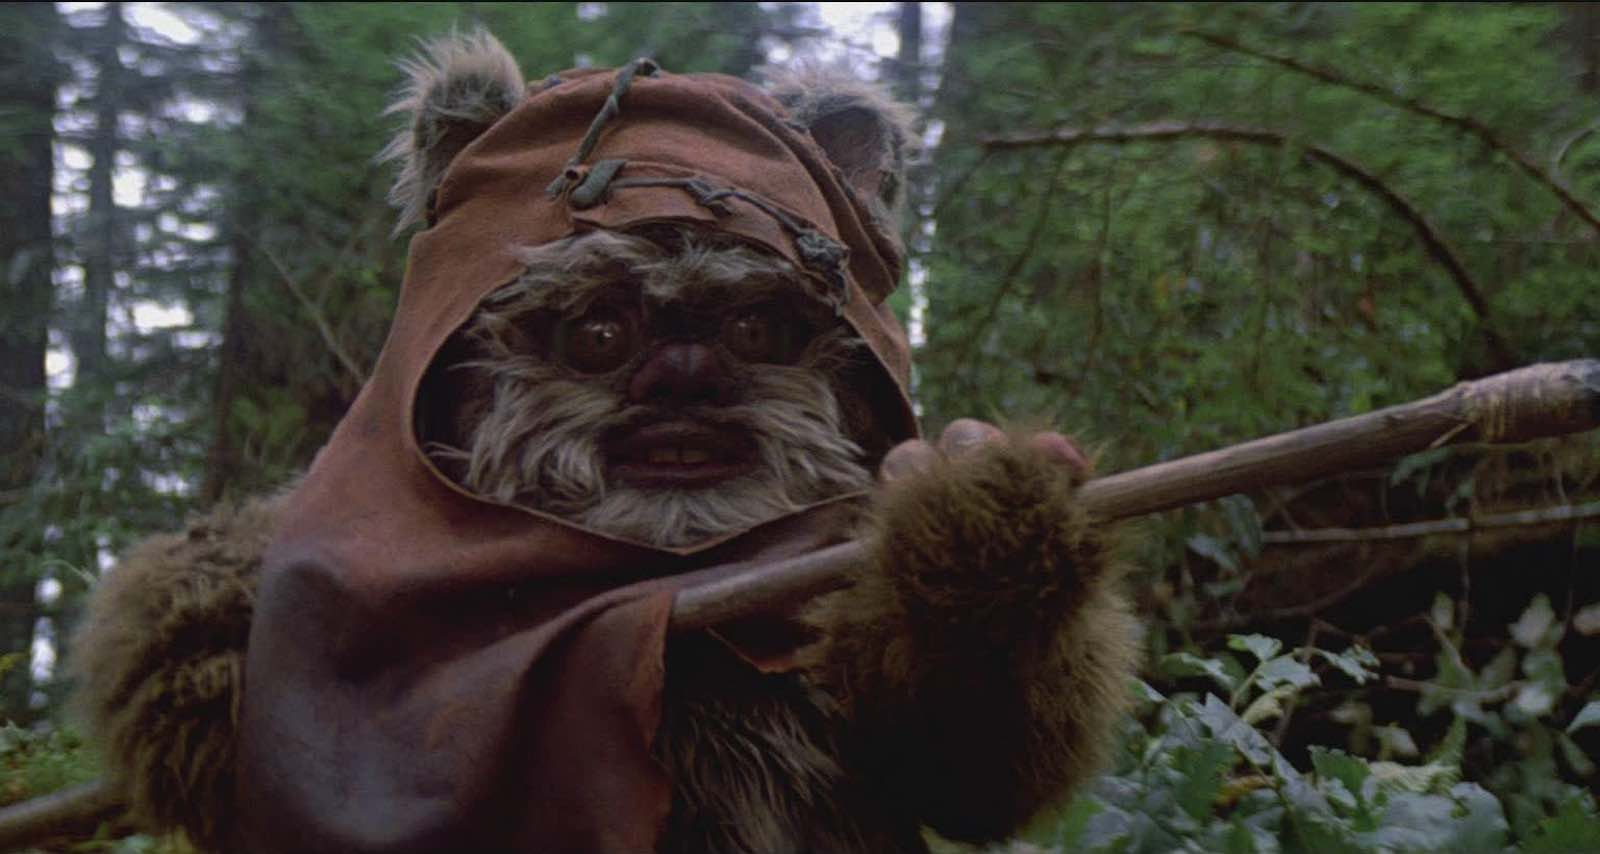 Ewok Star Wars